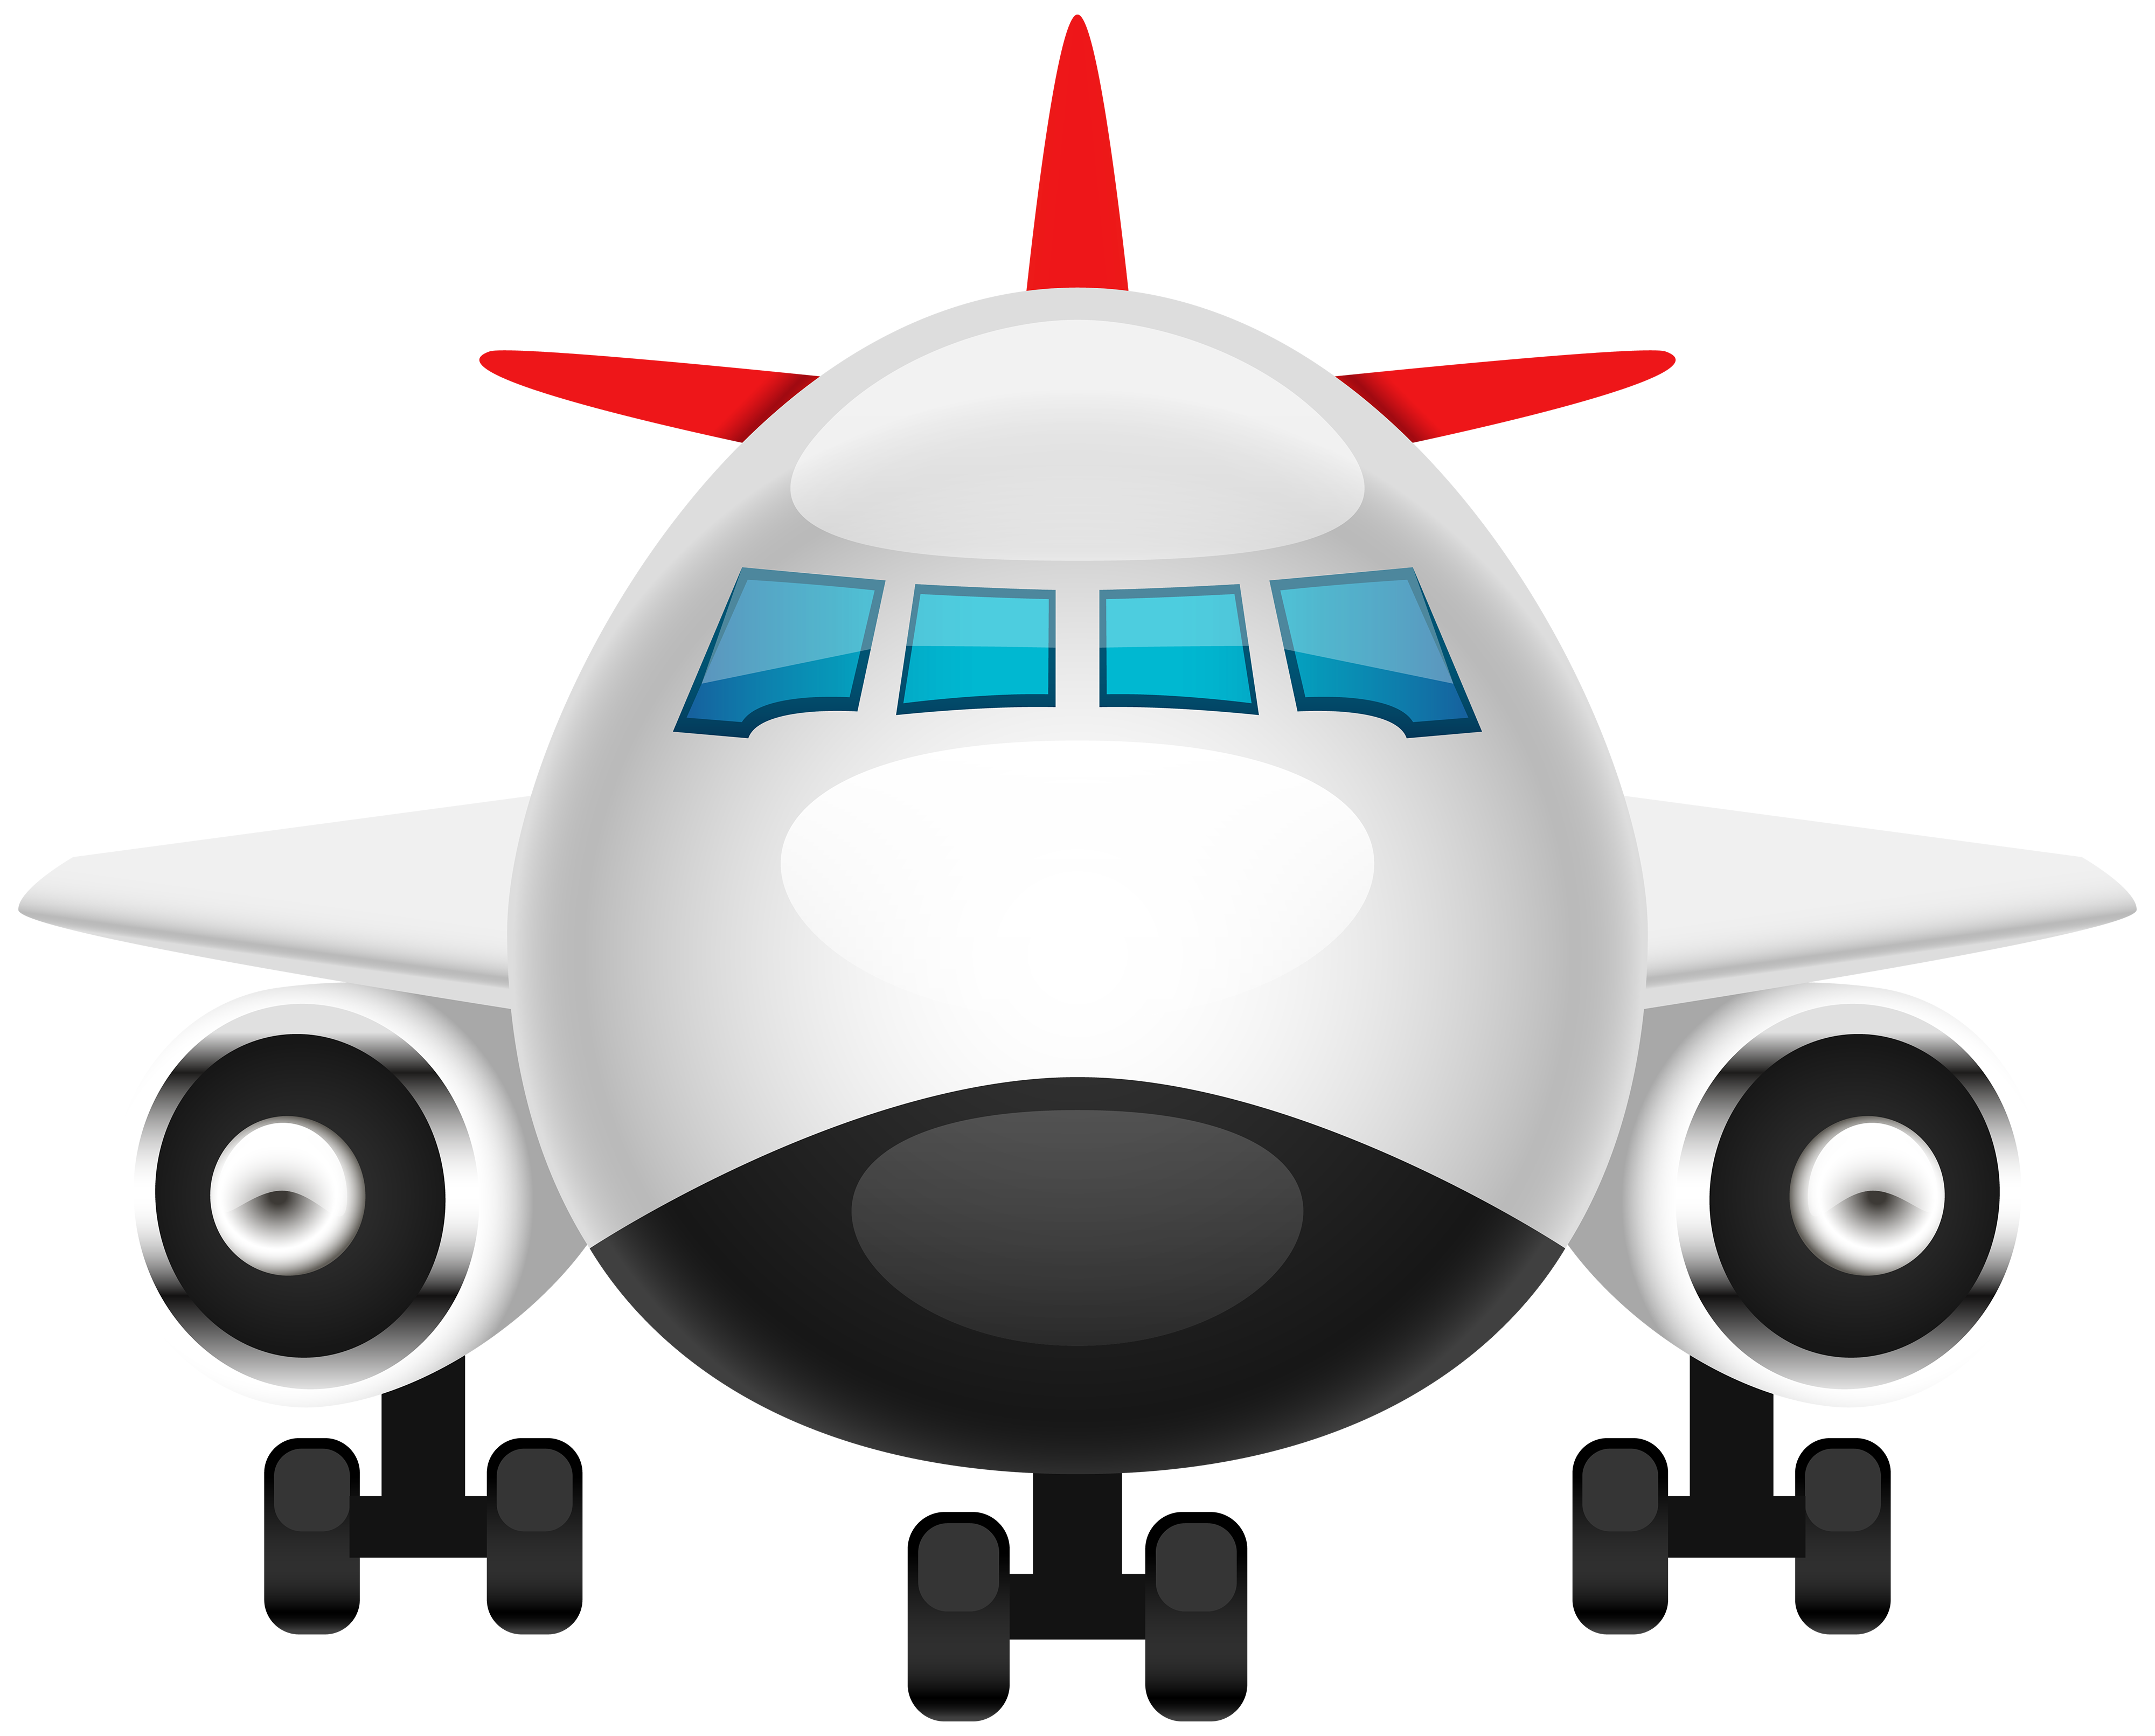 Meal clipart airplane, Meal airplane Transparent FREE for.